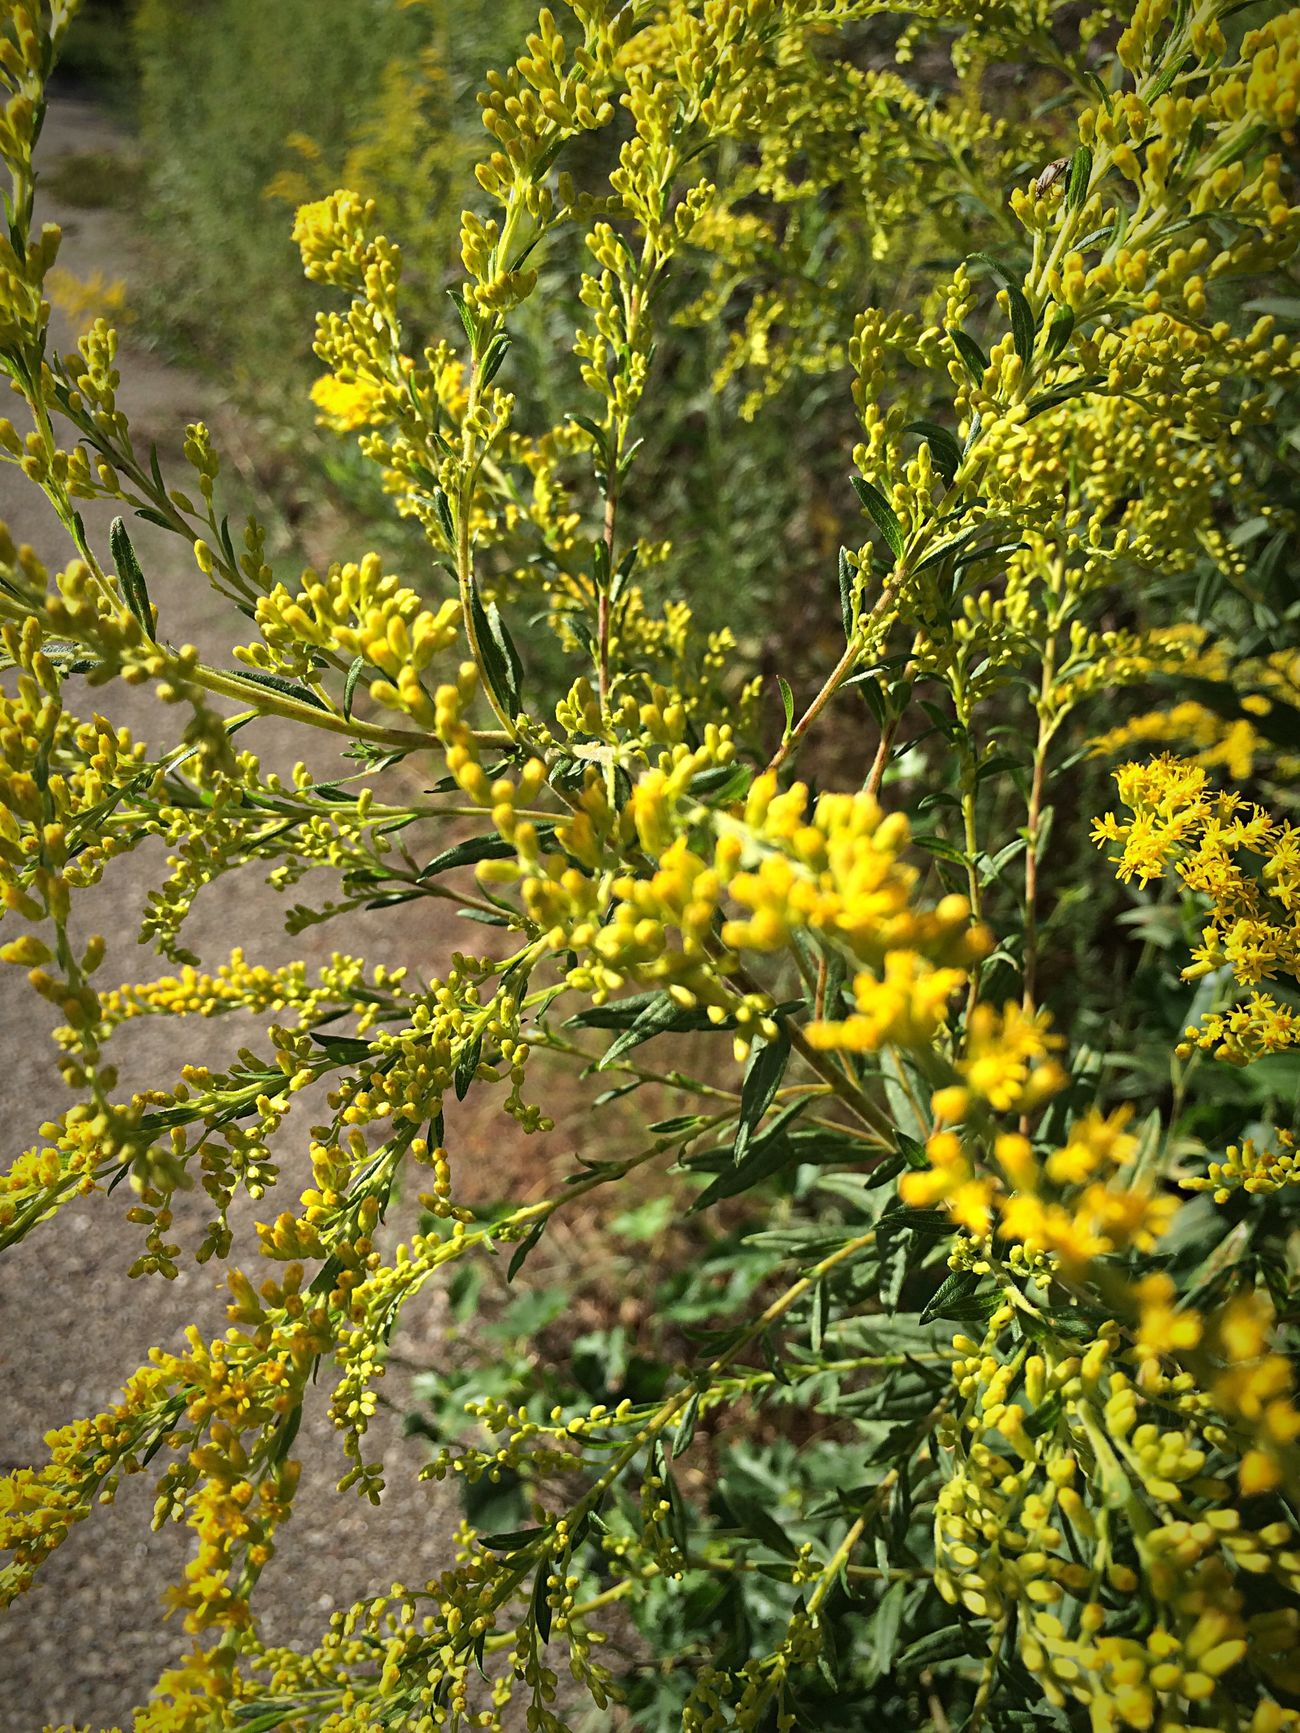 Goldenrod Michigan Autumn Blooming Beauty In Nature Plant Yellow Growth Close-up Focus On Foreground Outdoors